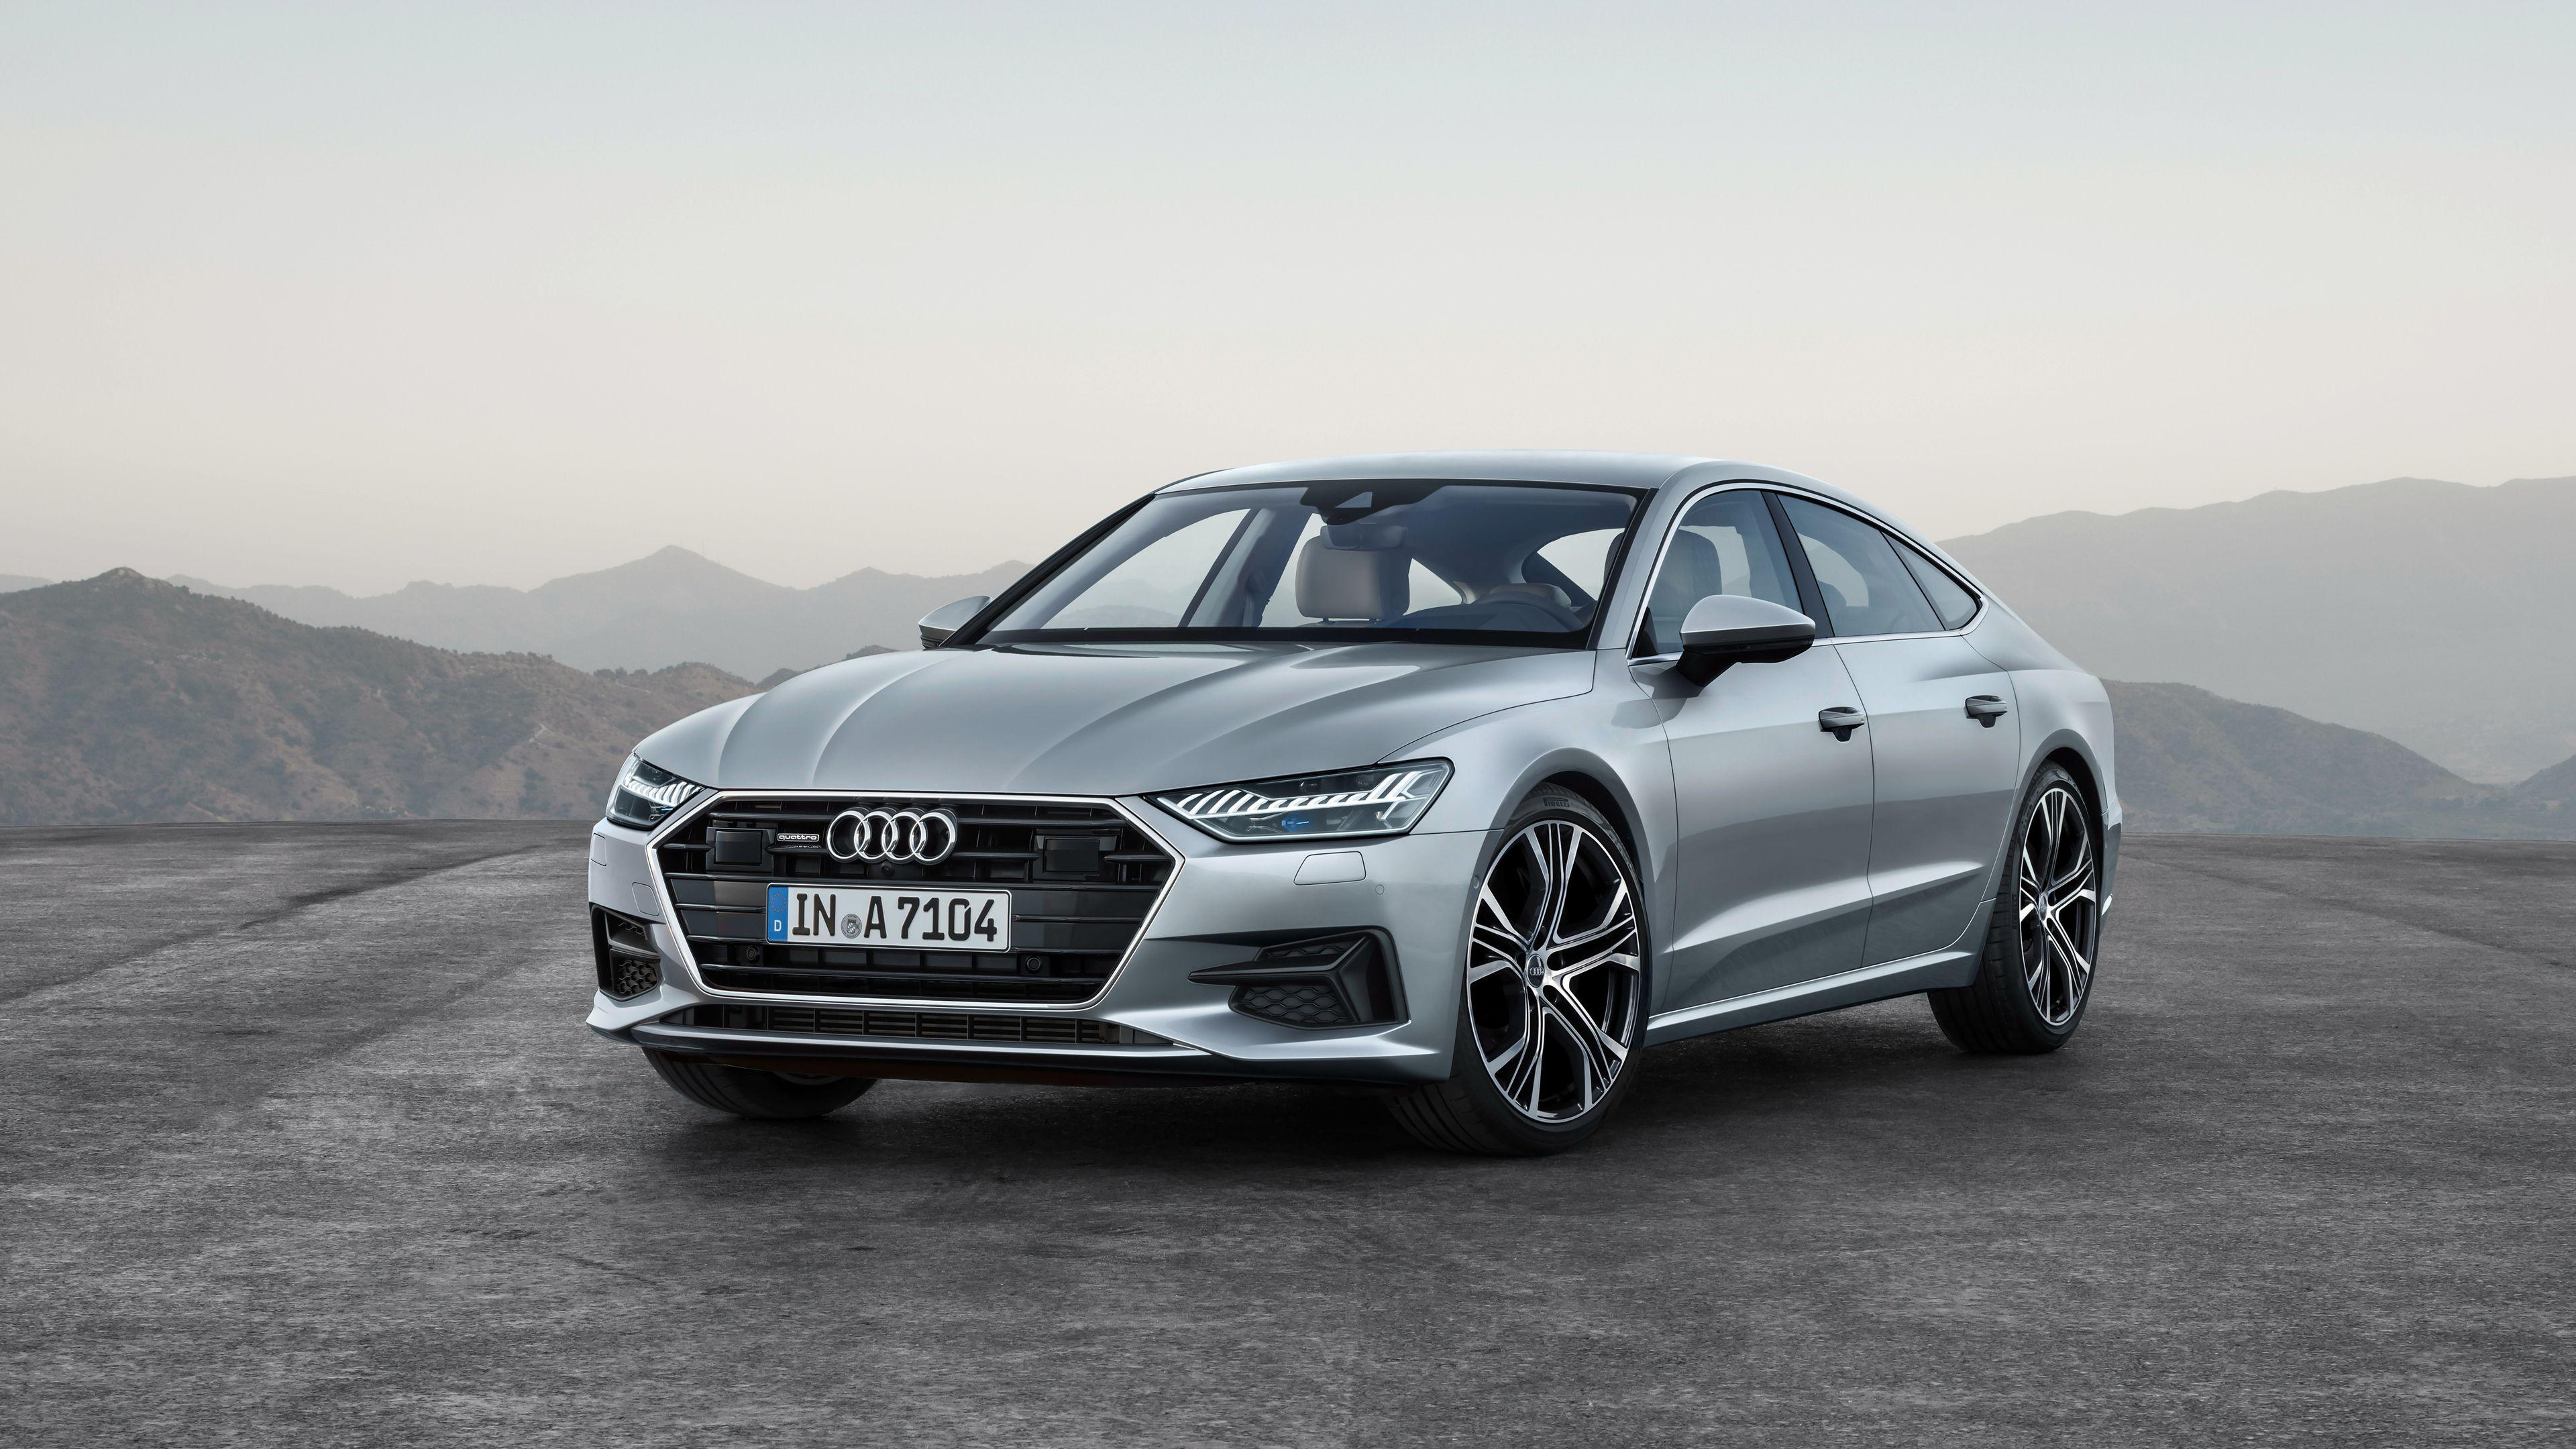 Topic For Audi A6 Wallpaper 1920x1080 2018 Audi A6 Avant S Line Wallpapers And Hd Images Car Pixel Wallpaper 1920x1080 44 Image Collections Of Photos In 1920x1080 Cityconnectapps